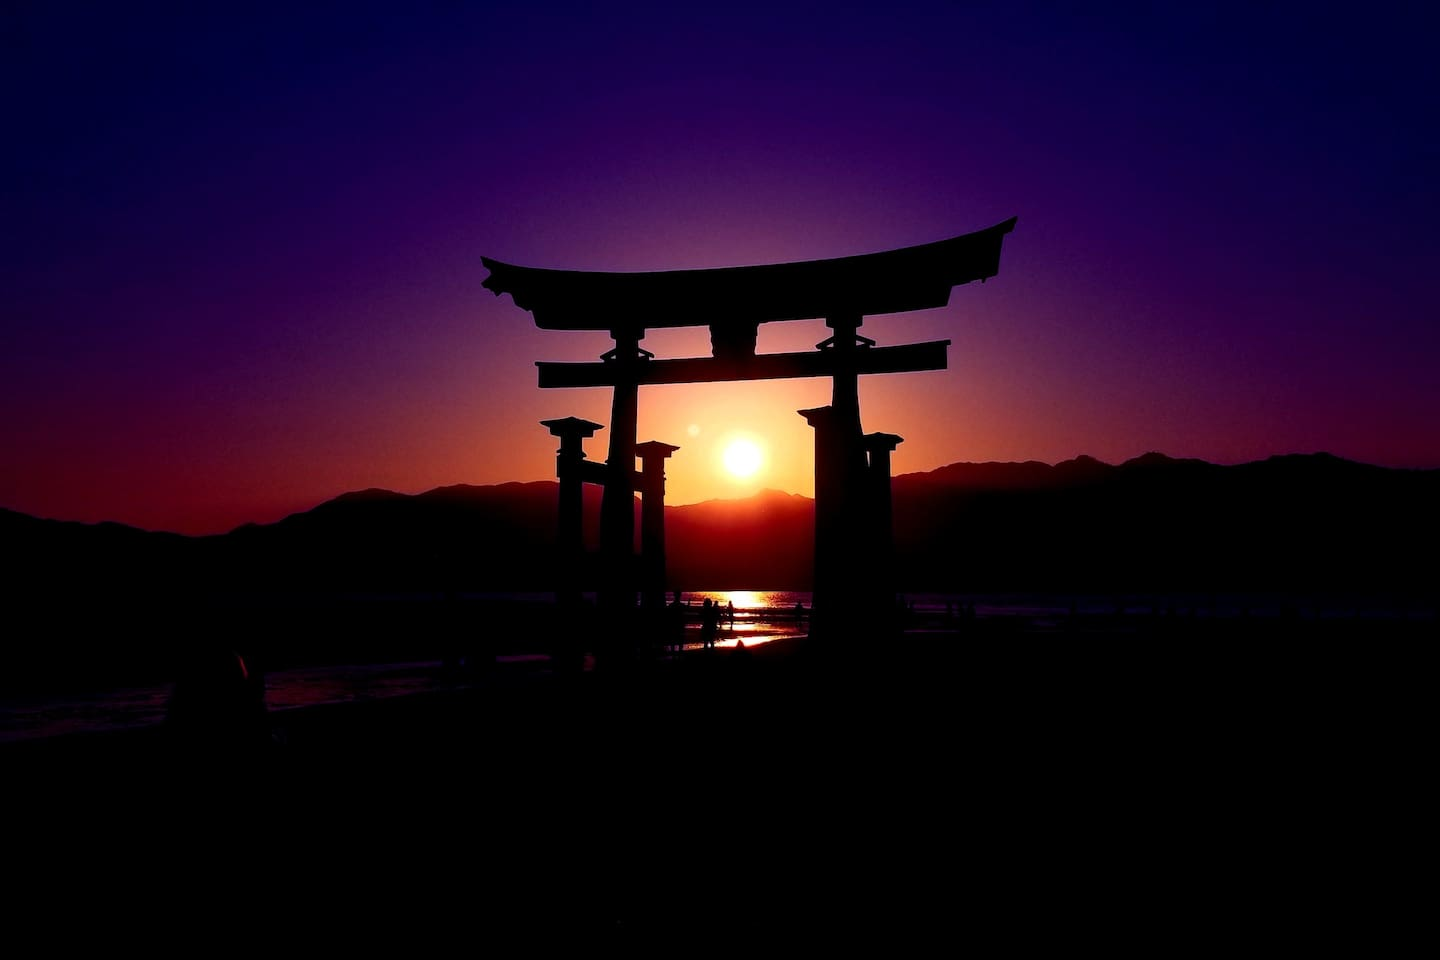 A gorgeous picture of the sunset on Miyajima. Upon arrival, we'll let you know the ideal time to visit Miyajima to capture the sunset at this precise moment.